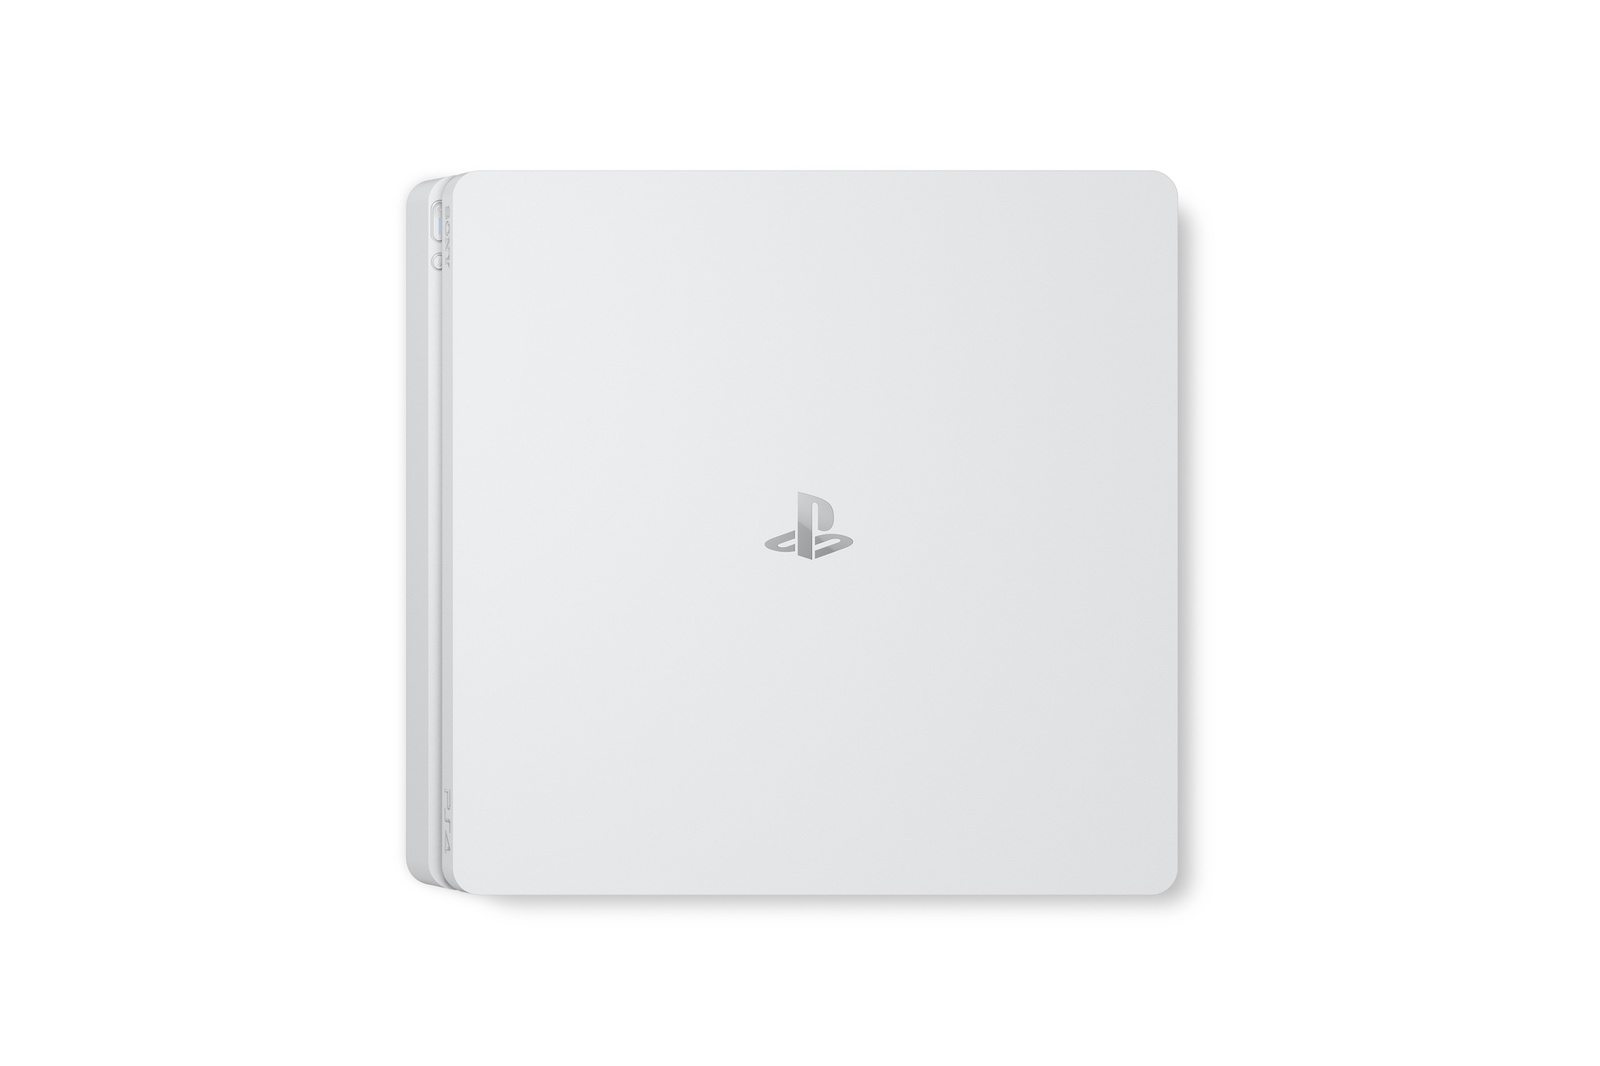 Ps4 Slim 500gb Console White Buy Now At Mighty Ape Nz Stik New Model Glacier For Image